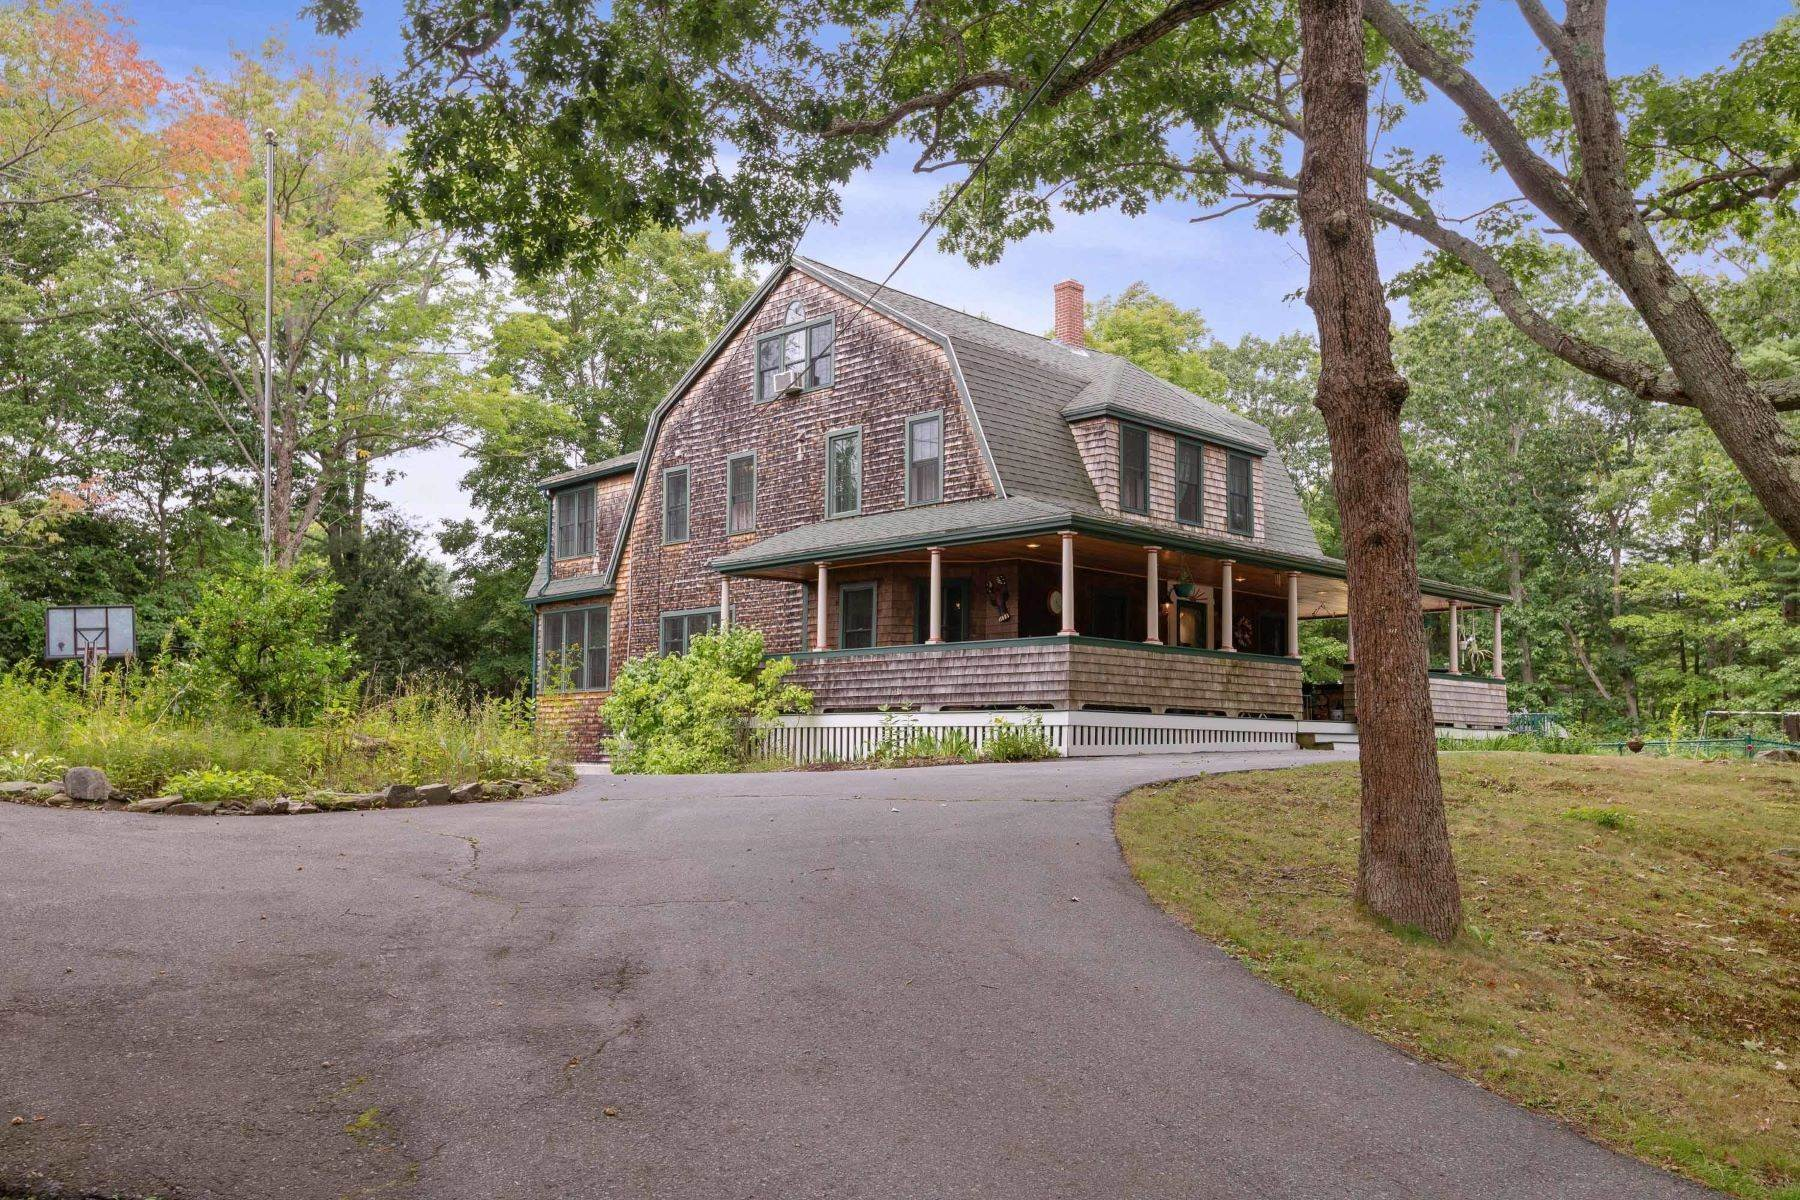 Single Family Homes for Sale at Cape Elizabeth, ME 04107